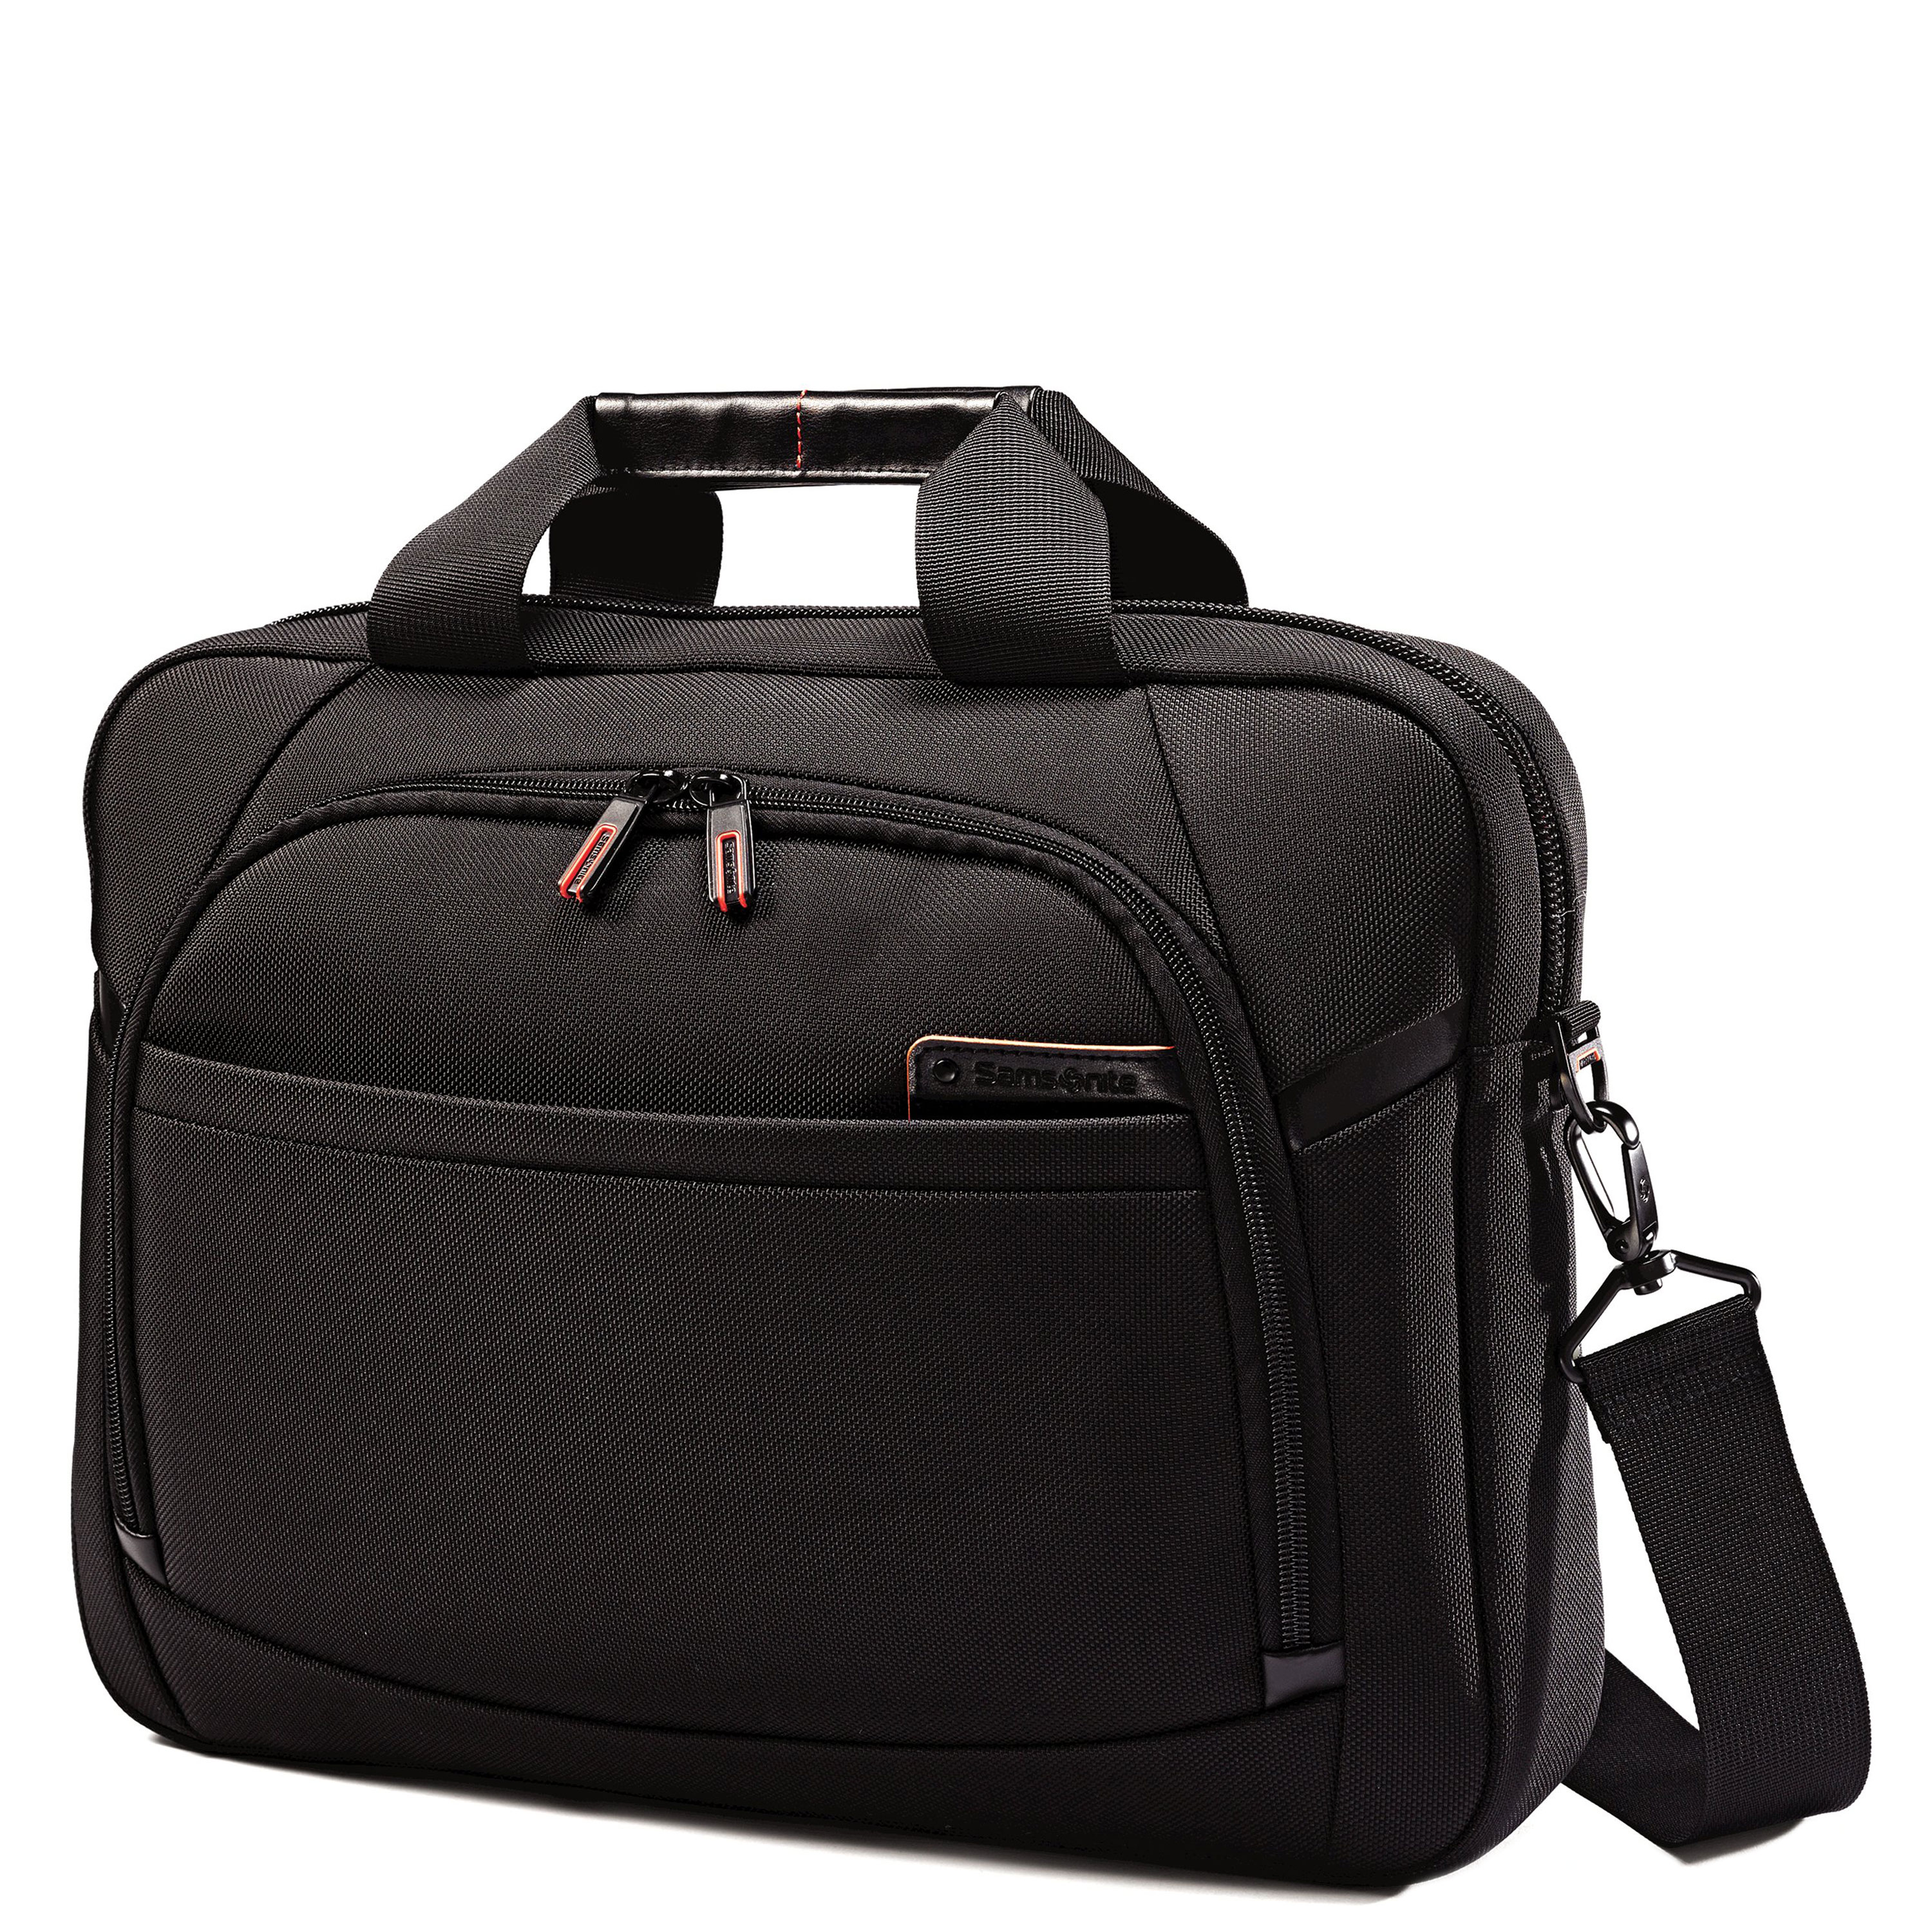 "Fits 15.6"" laptops. Leather touch points. Poron® shock absorbers. Tablet/iPad® pocket. Smart sleeve. Quick stash pocket. Weight: 2.3 lbs. Body Dimensions: 16.25"" x 2.0"" x 2.75"""